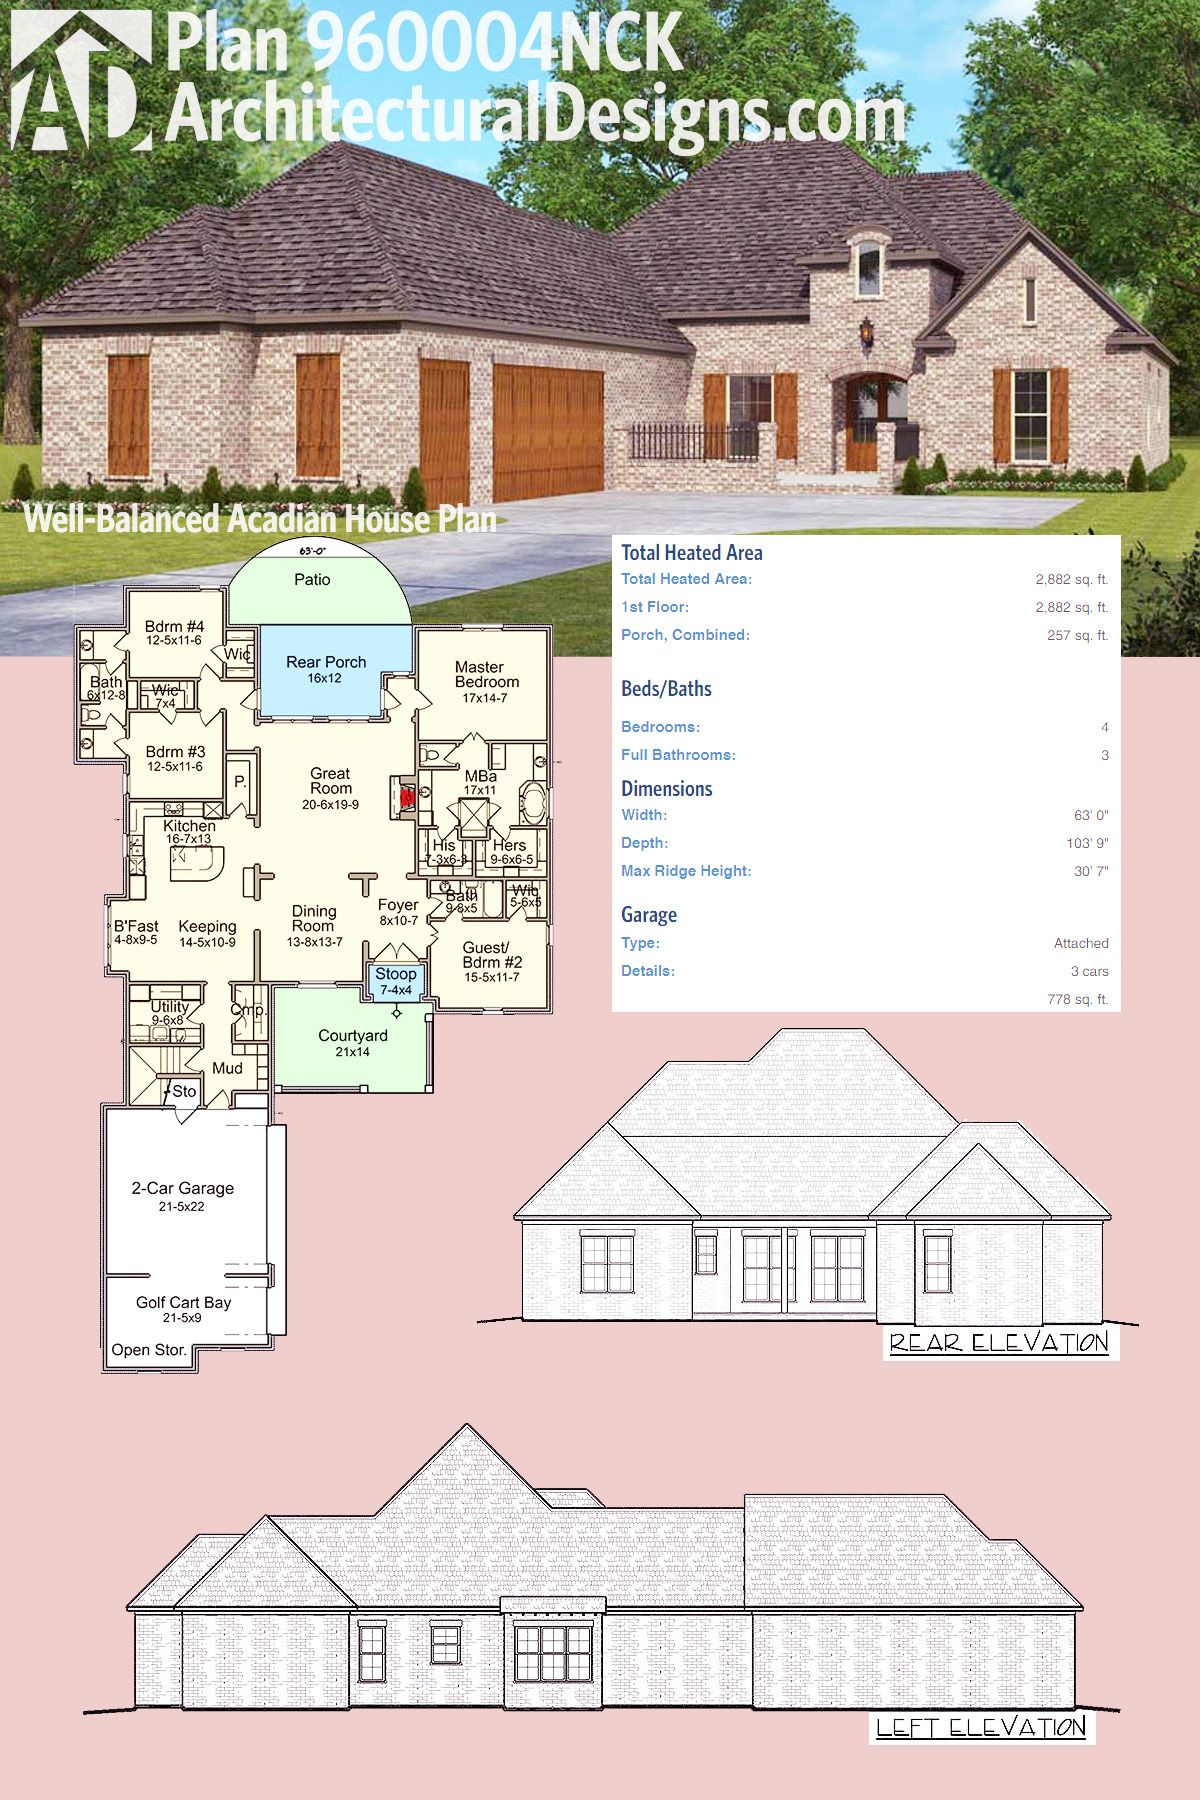 Architectural Designs Acadian House Plan 960004NCK gives you 4 beds and over 2,800 square feet of heated living space all one one floor. Ready when you are. Where do YOU want to build?